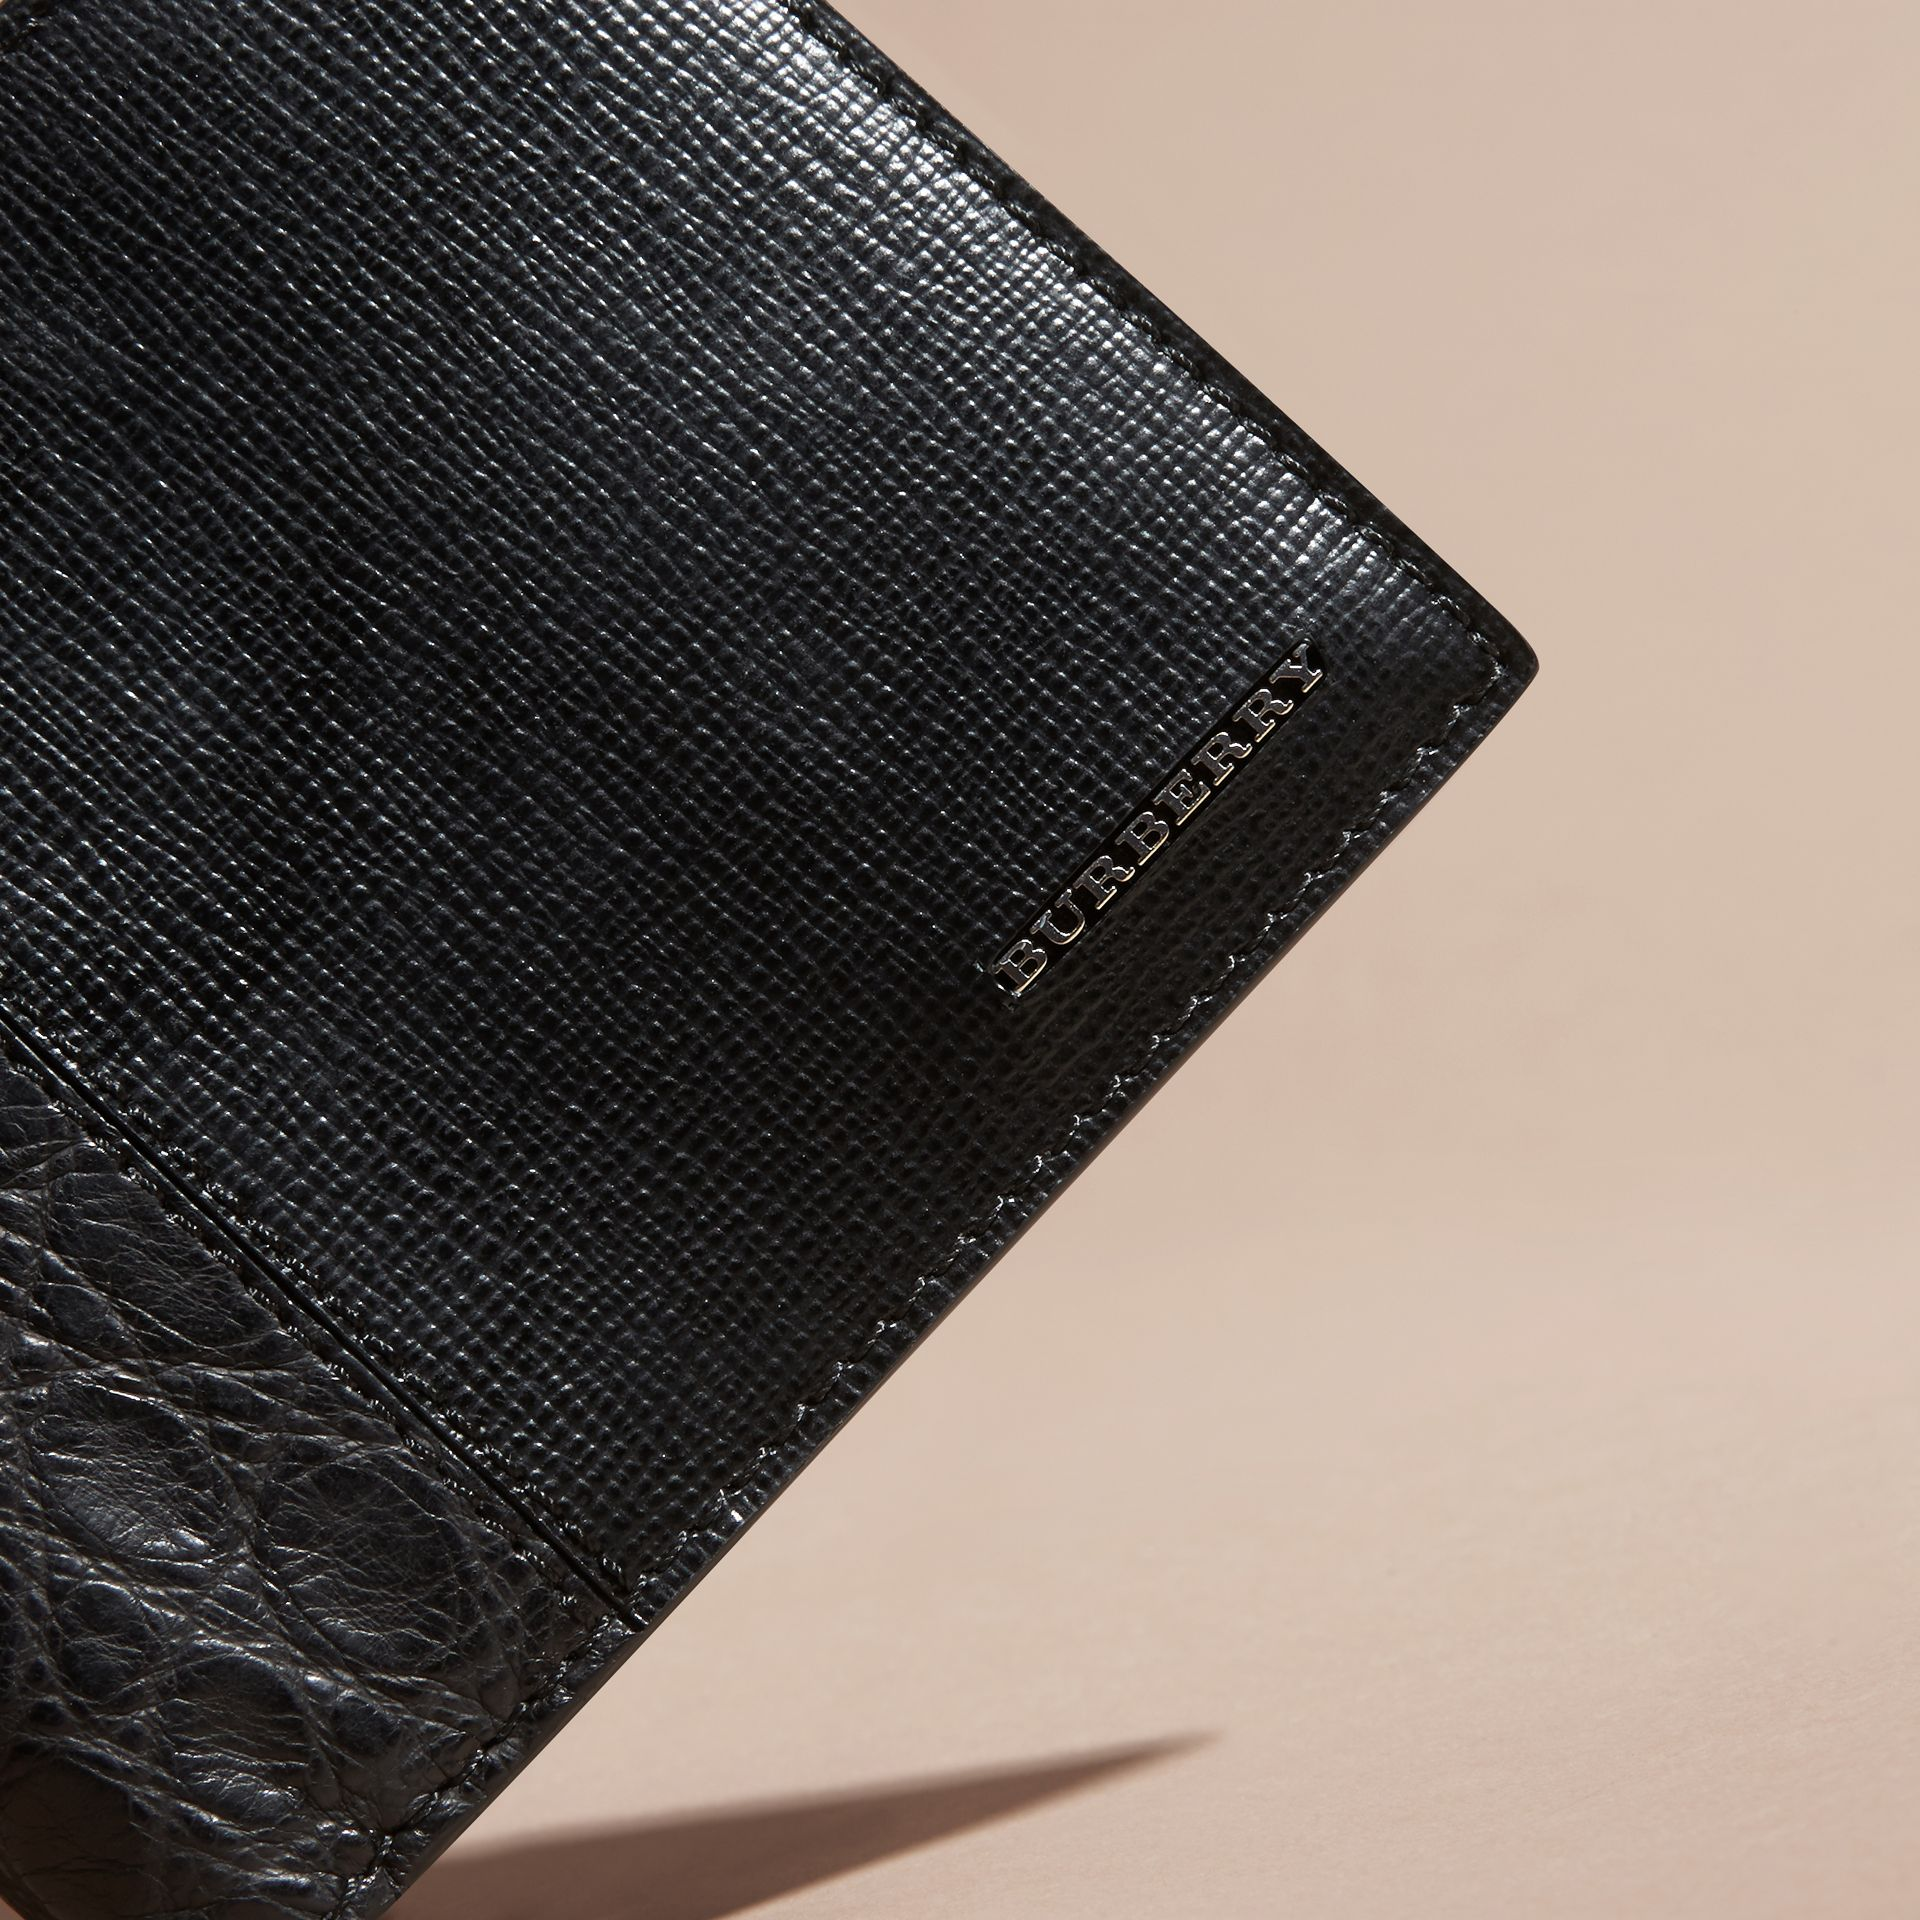 Leather and Alligator International Bifold Wallet in Black - Men | Burberry - gallery image 1